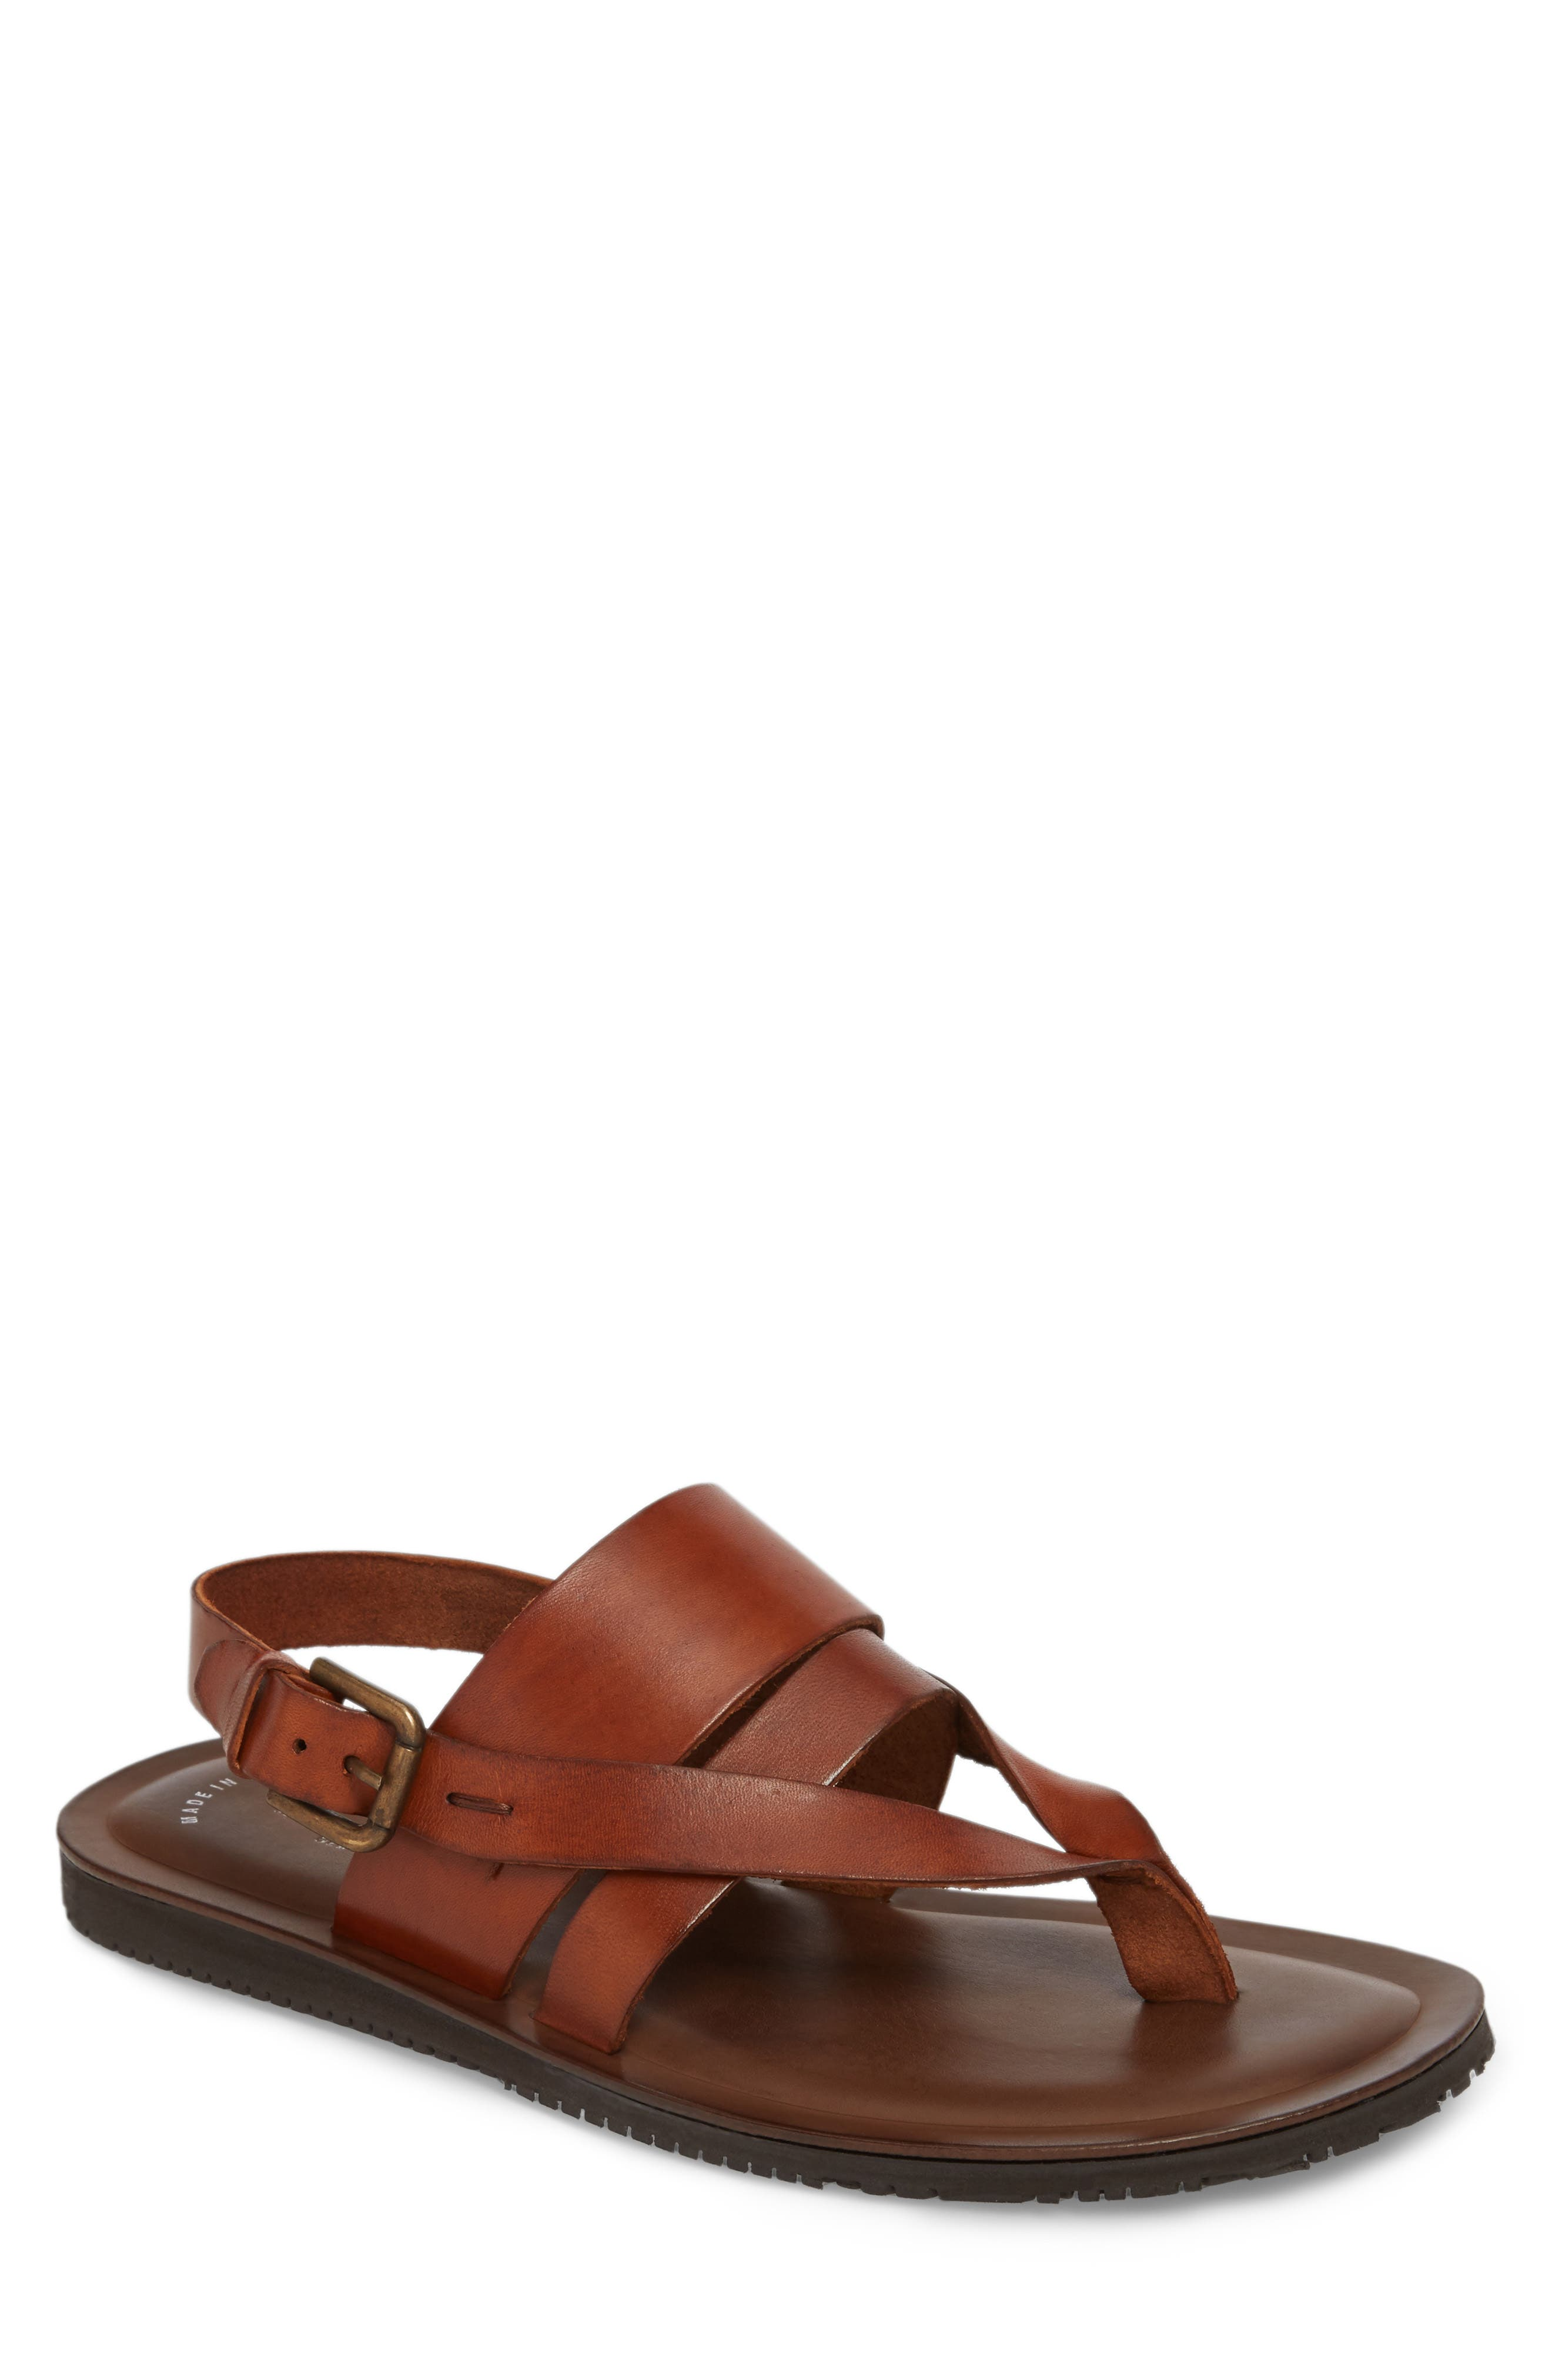 KENNETH COLE NEW YORK, 'Reel-Ist' Sandal, Main thumbnail 1, color, COGNAC LEATHER